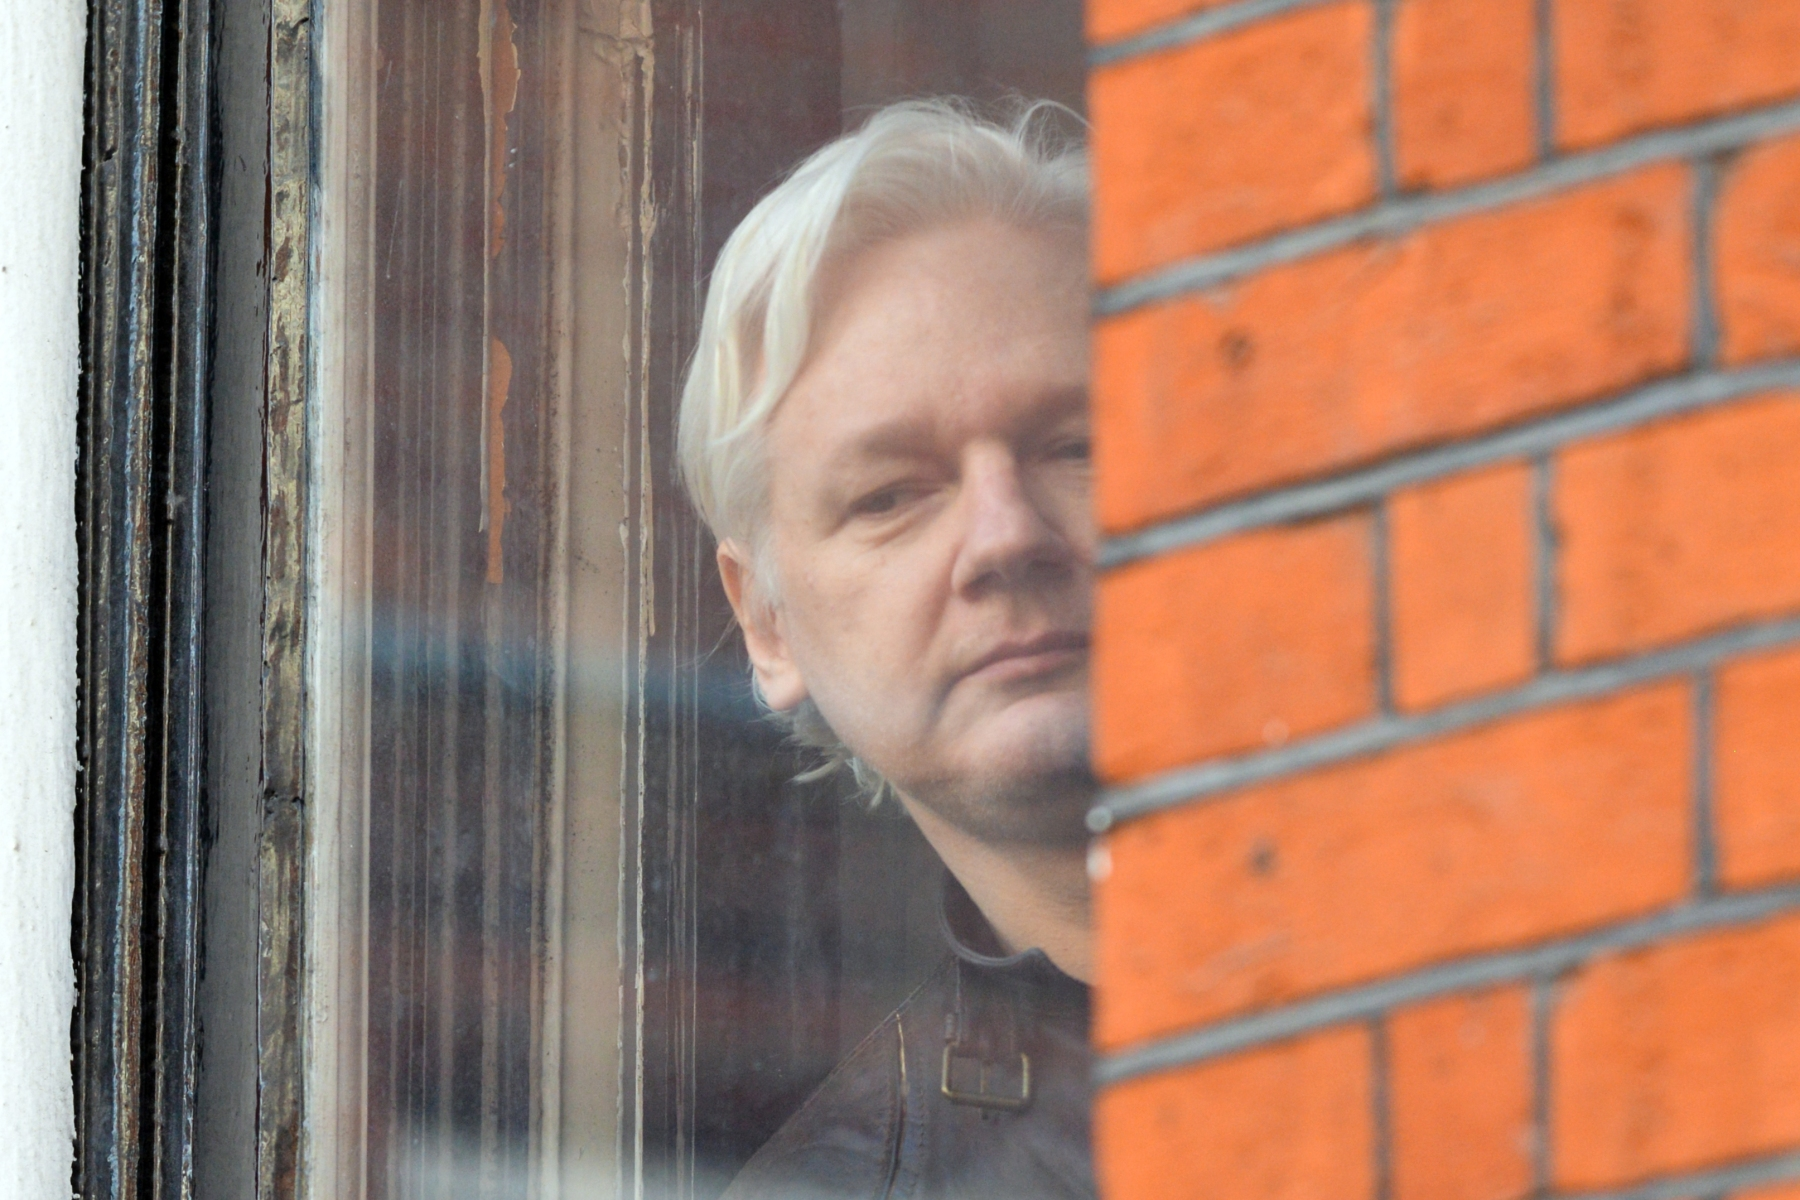 LONDON, UNITED KINGDOM - MAY 19: Julian Assange speaks to the media from the balcony of the Embassy Of Ecuador on May 19, 2017 in London, England.Julian Assange, founder of the Wikileaks website that published US Government secrets, has been wanted in Sweden on charges of rape since 2012. He sought asylum in the Ecuadorian Embassy in London and today police have said he will still face arrest if he leaves.PHOTOGRAPH BY Matthew Chattle/Barcroft ImagesLondon-T:+44 207 033 1031 E:hello@barcroftmedia.com -New York-T:+1 212 796 2458 E:hello@barcroftusa.com -New Delhi-T:+91 11 4053 2429 E:hello@barcroftindia.com www.barcroftimages.com (Photo credit should read Matthew Chattle/Barcroft Images / Barcroft Media via Getty Images)